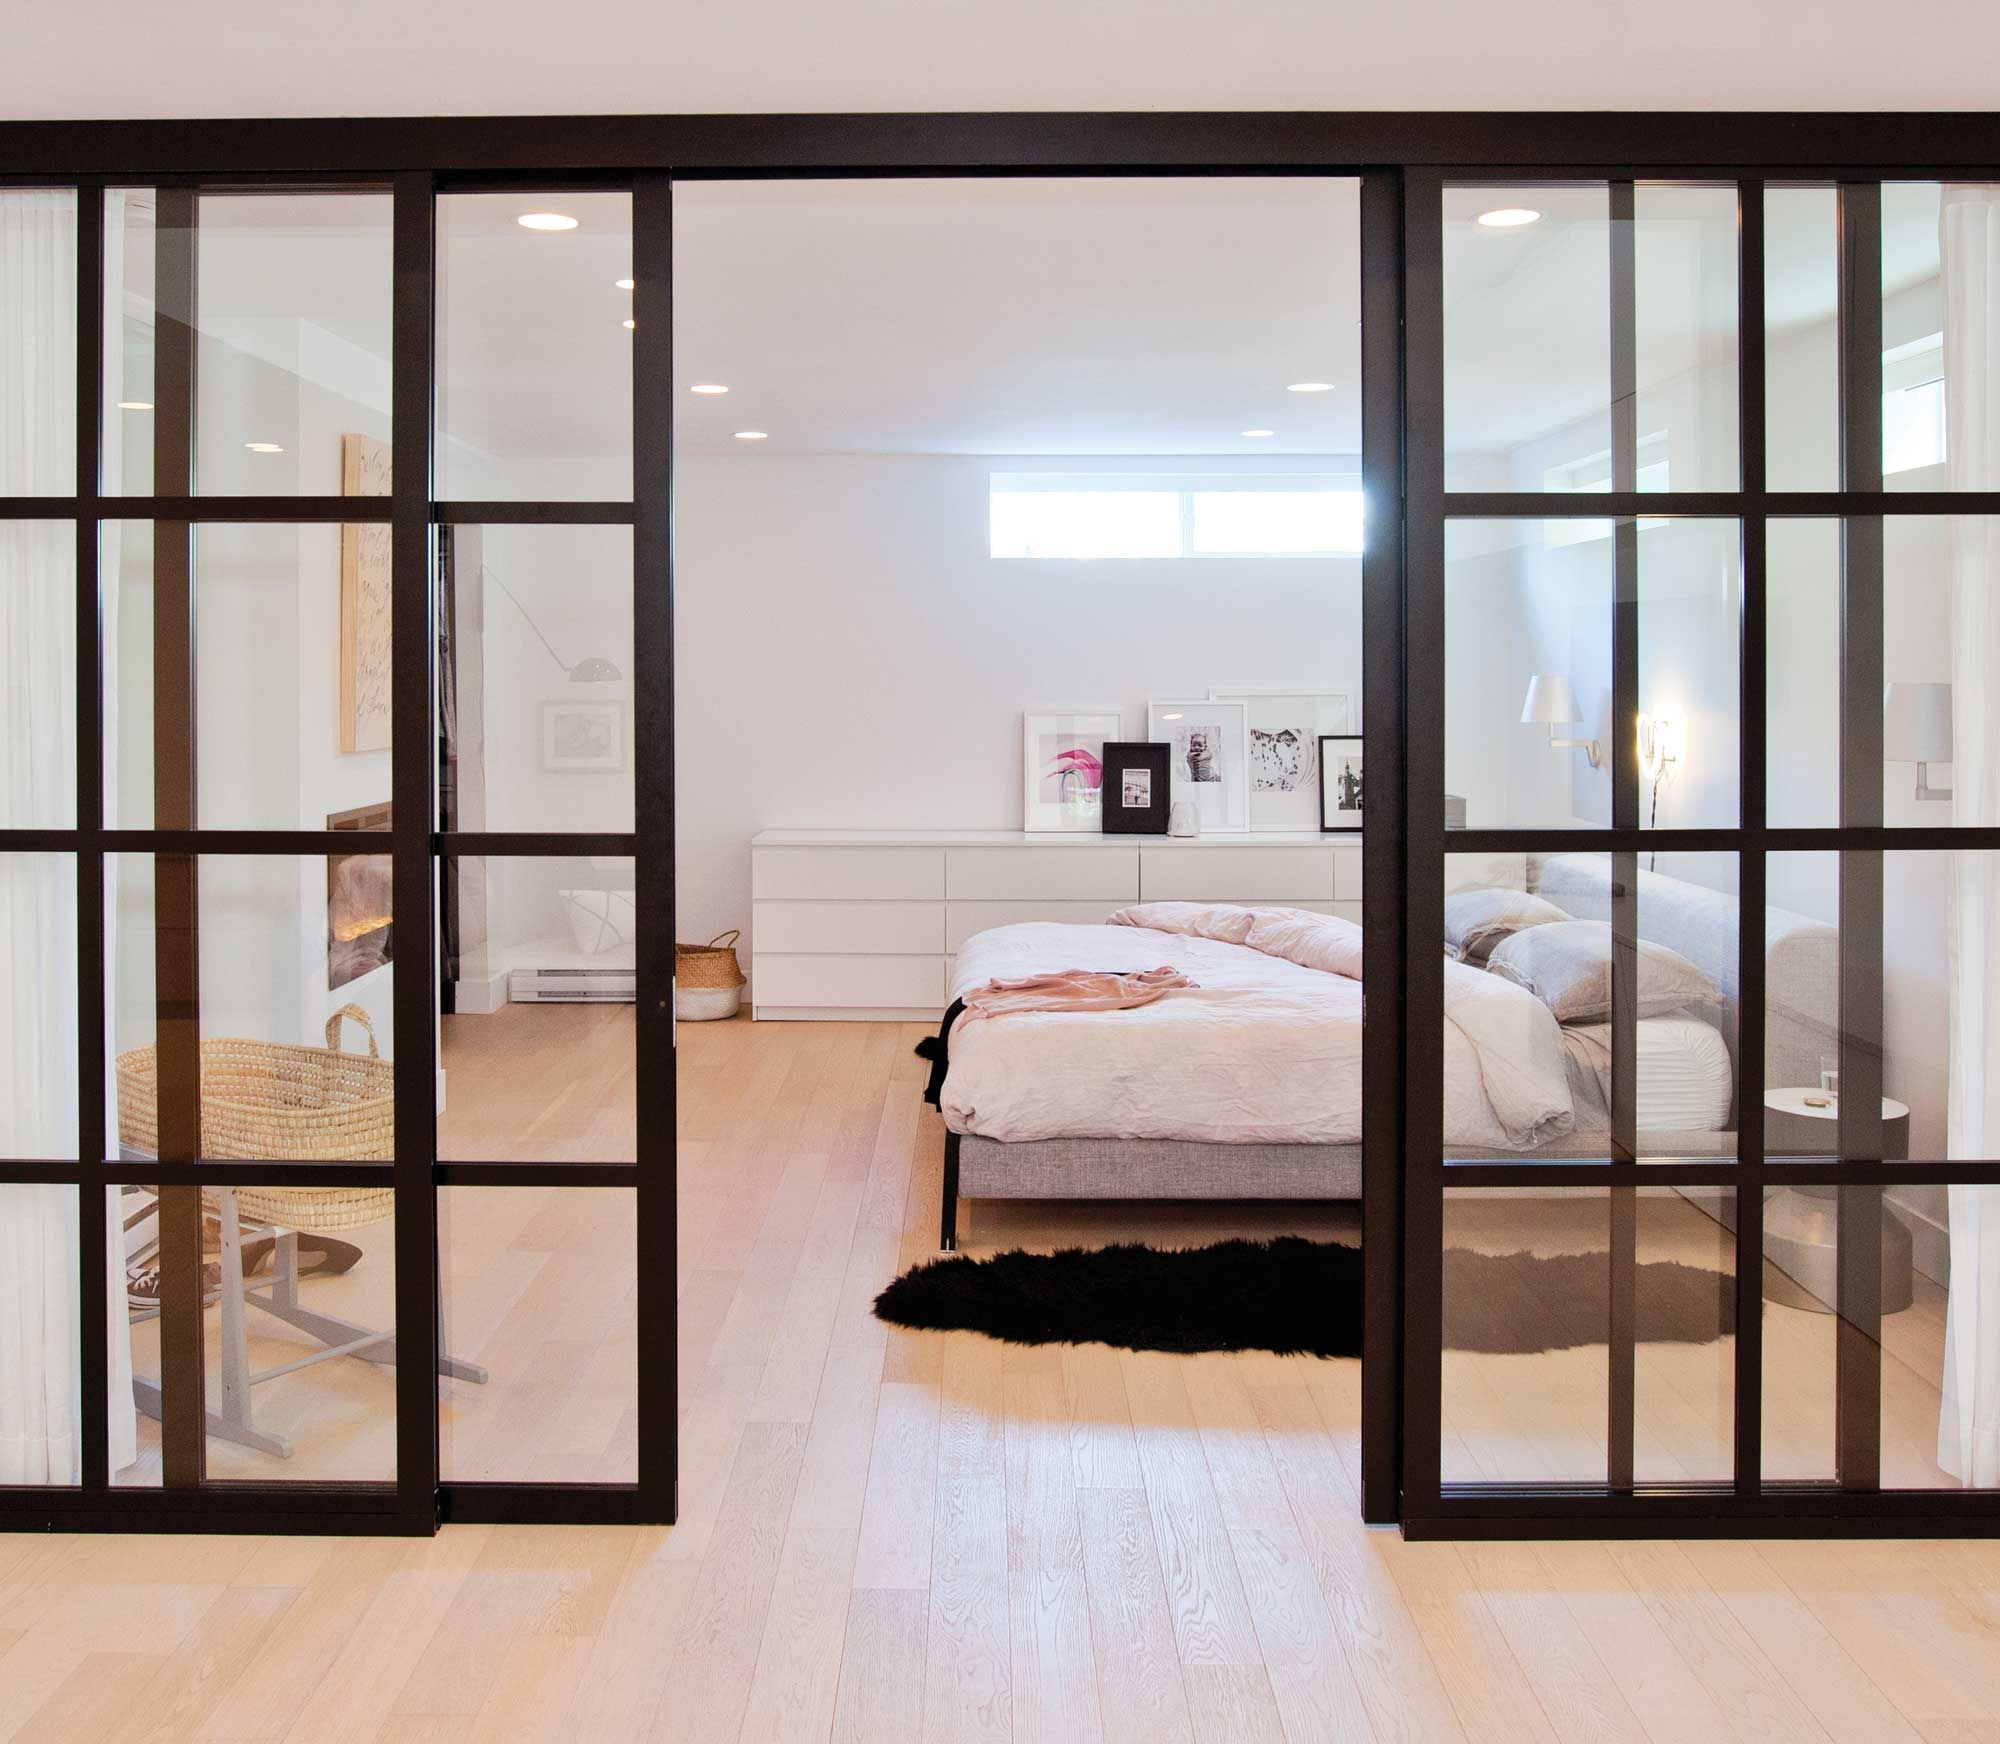 How To Make A Basement Bedroom Into A Bright And Airy